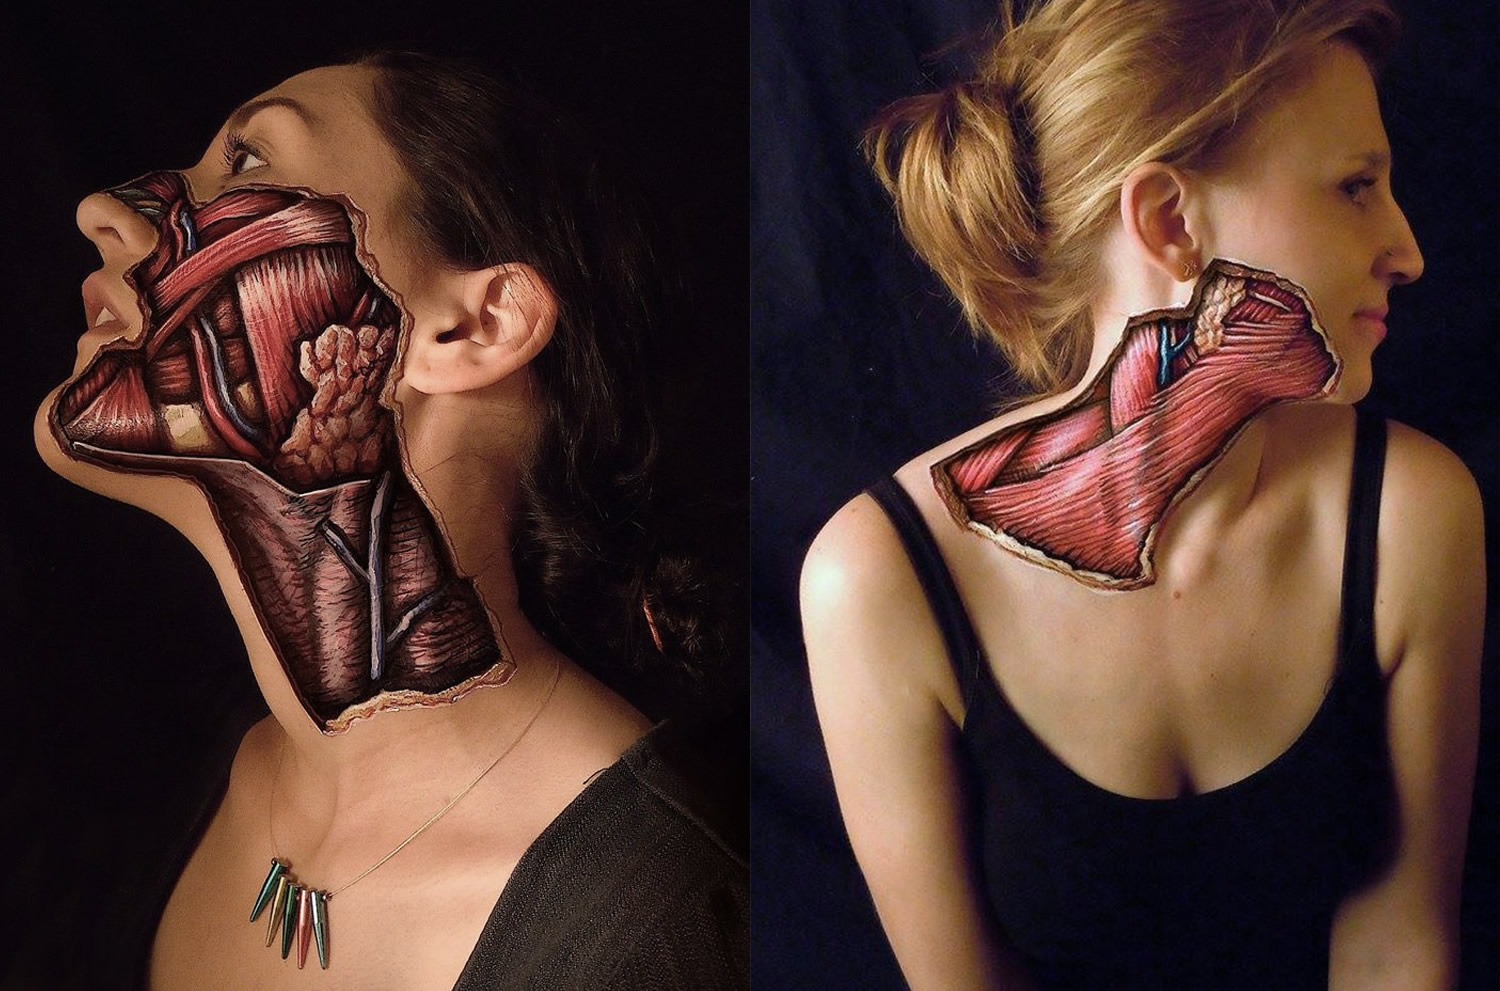 body painting (anatomy) by danny quirk